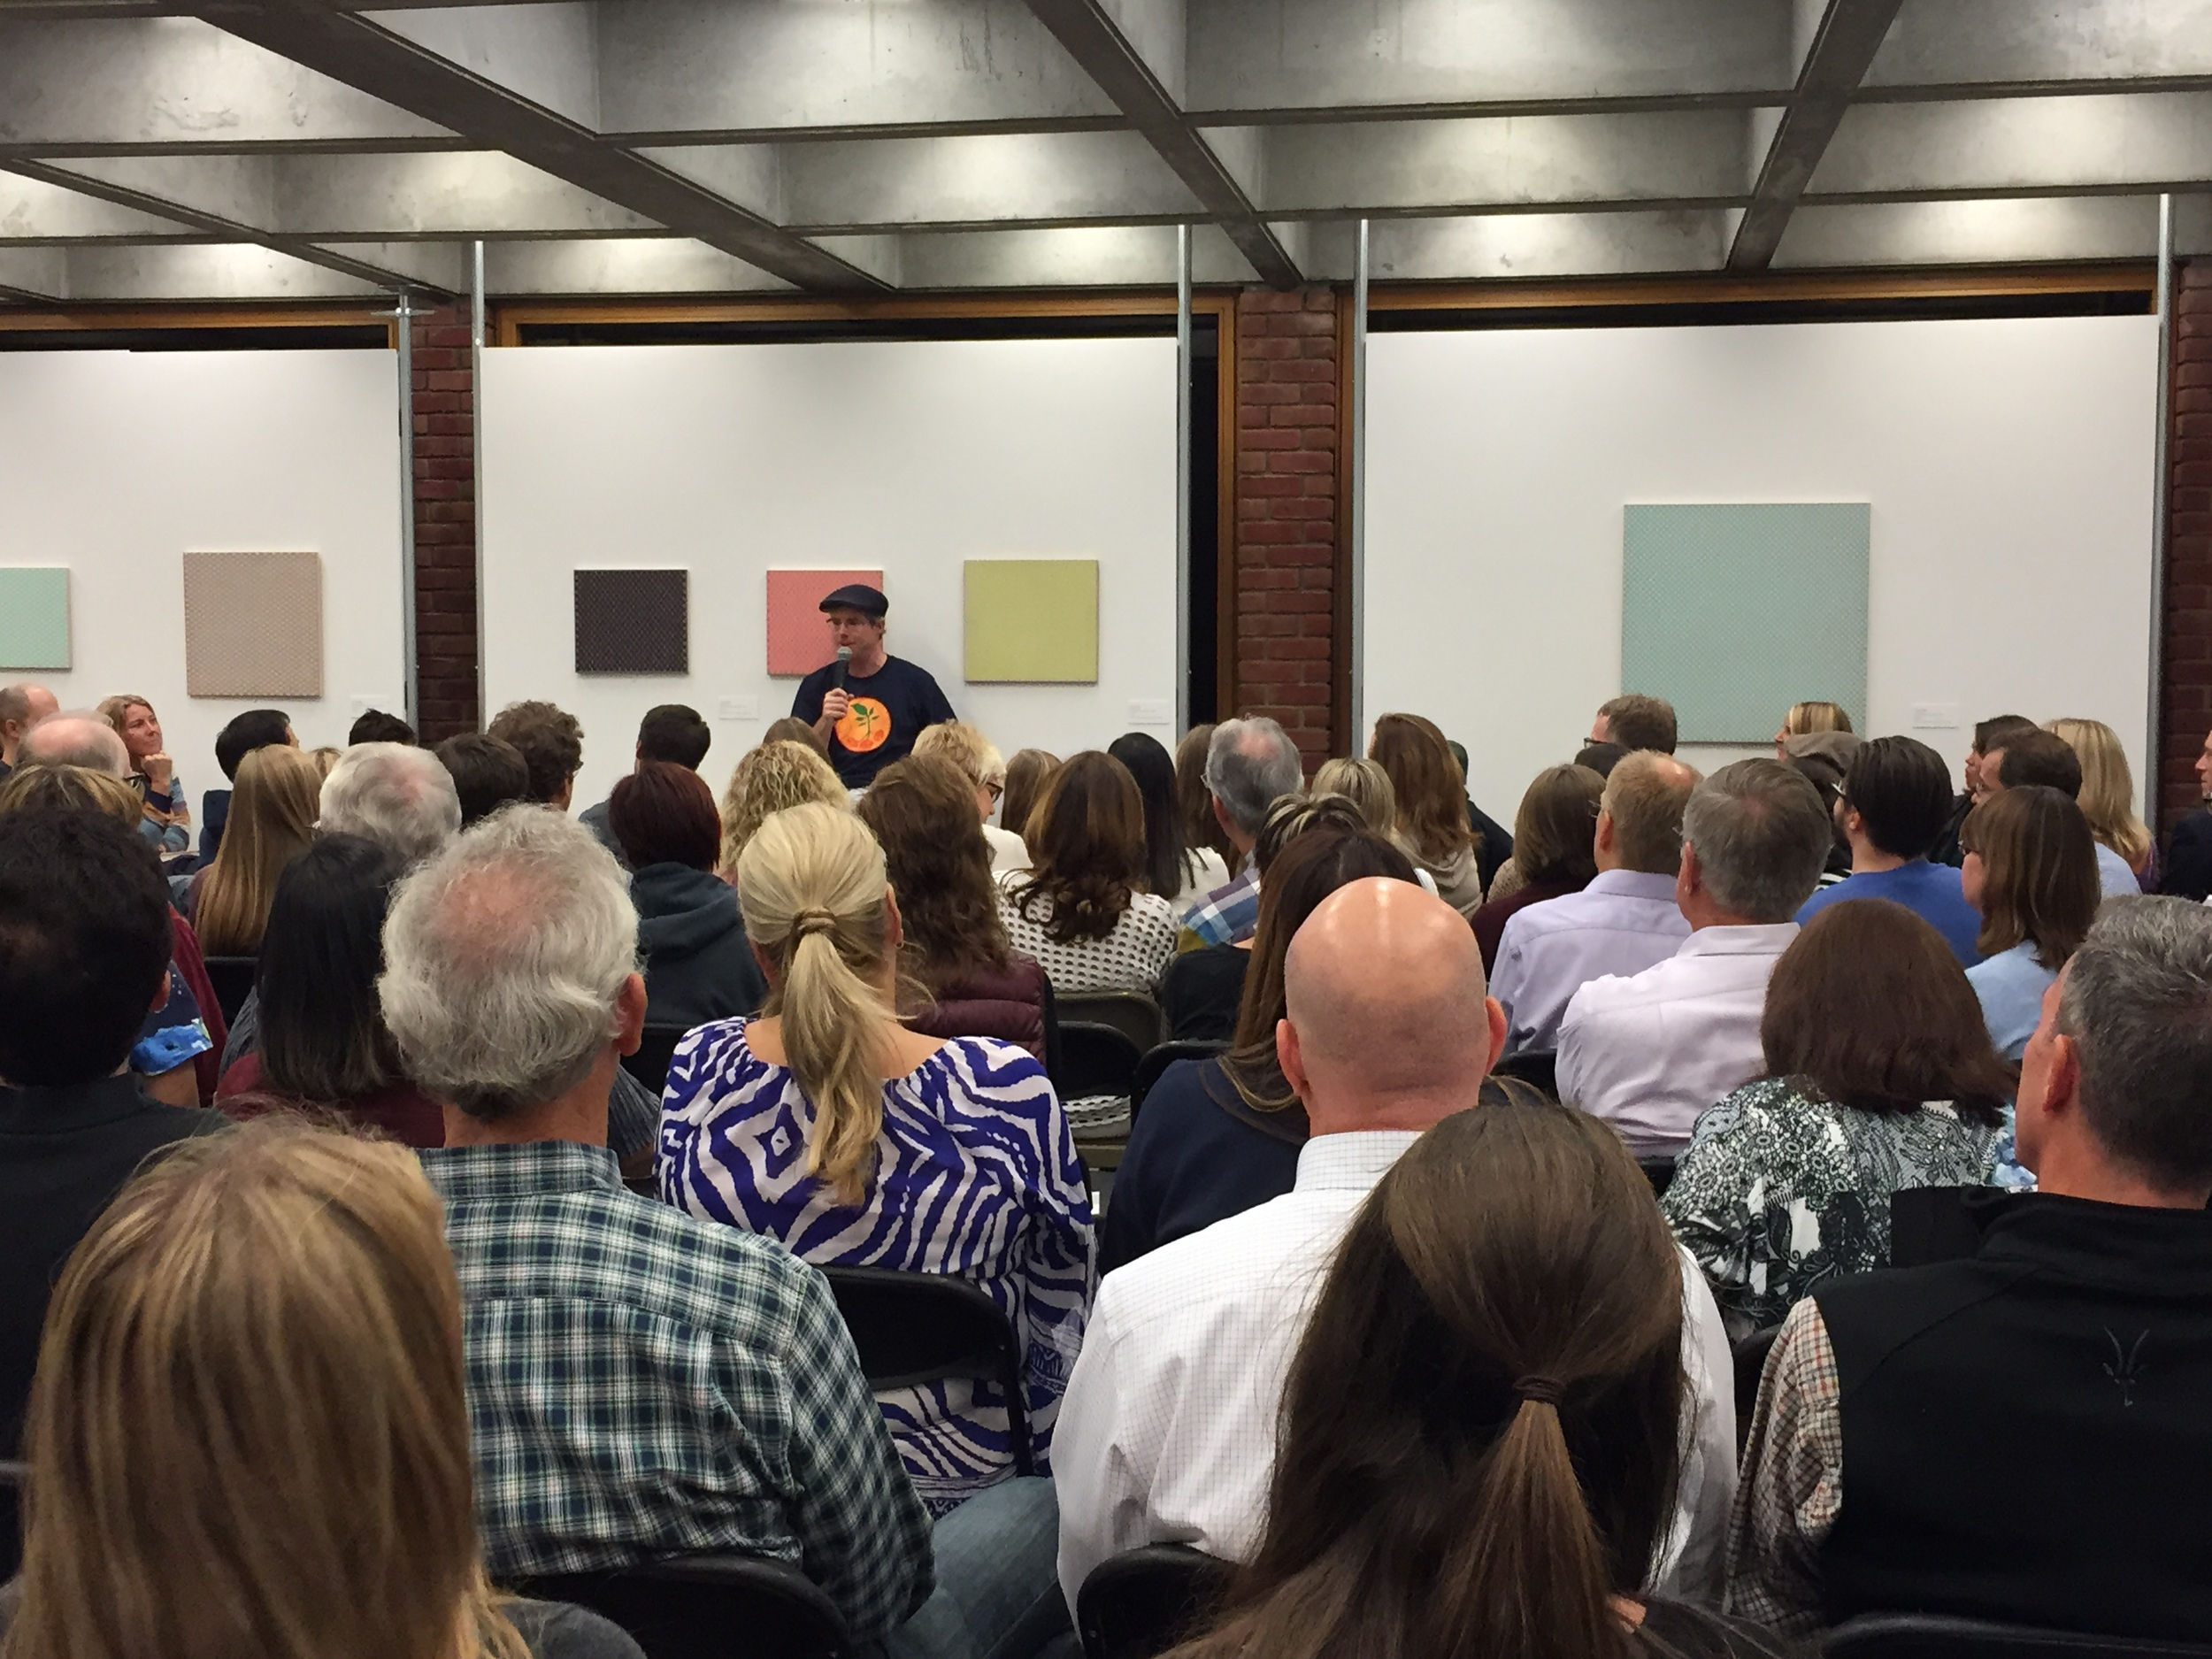 Author Andy Weir, speaking at NUMU among paintings by Stephen Beal, 2015.